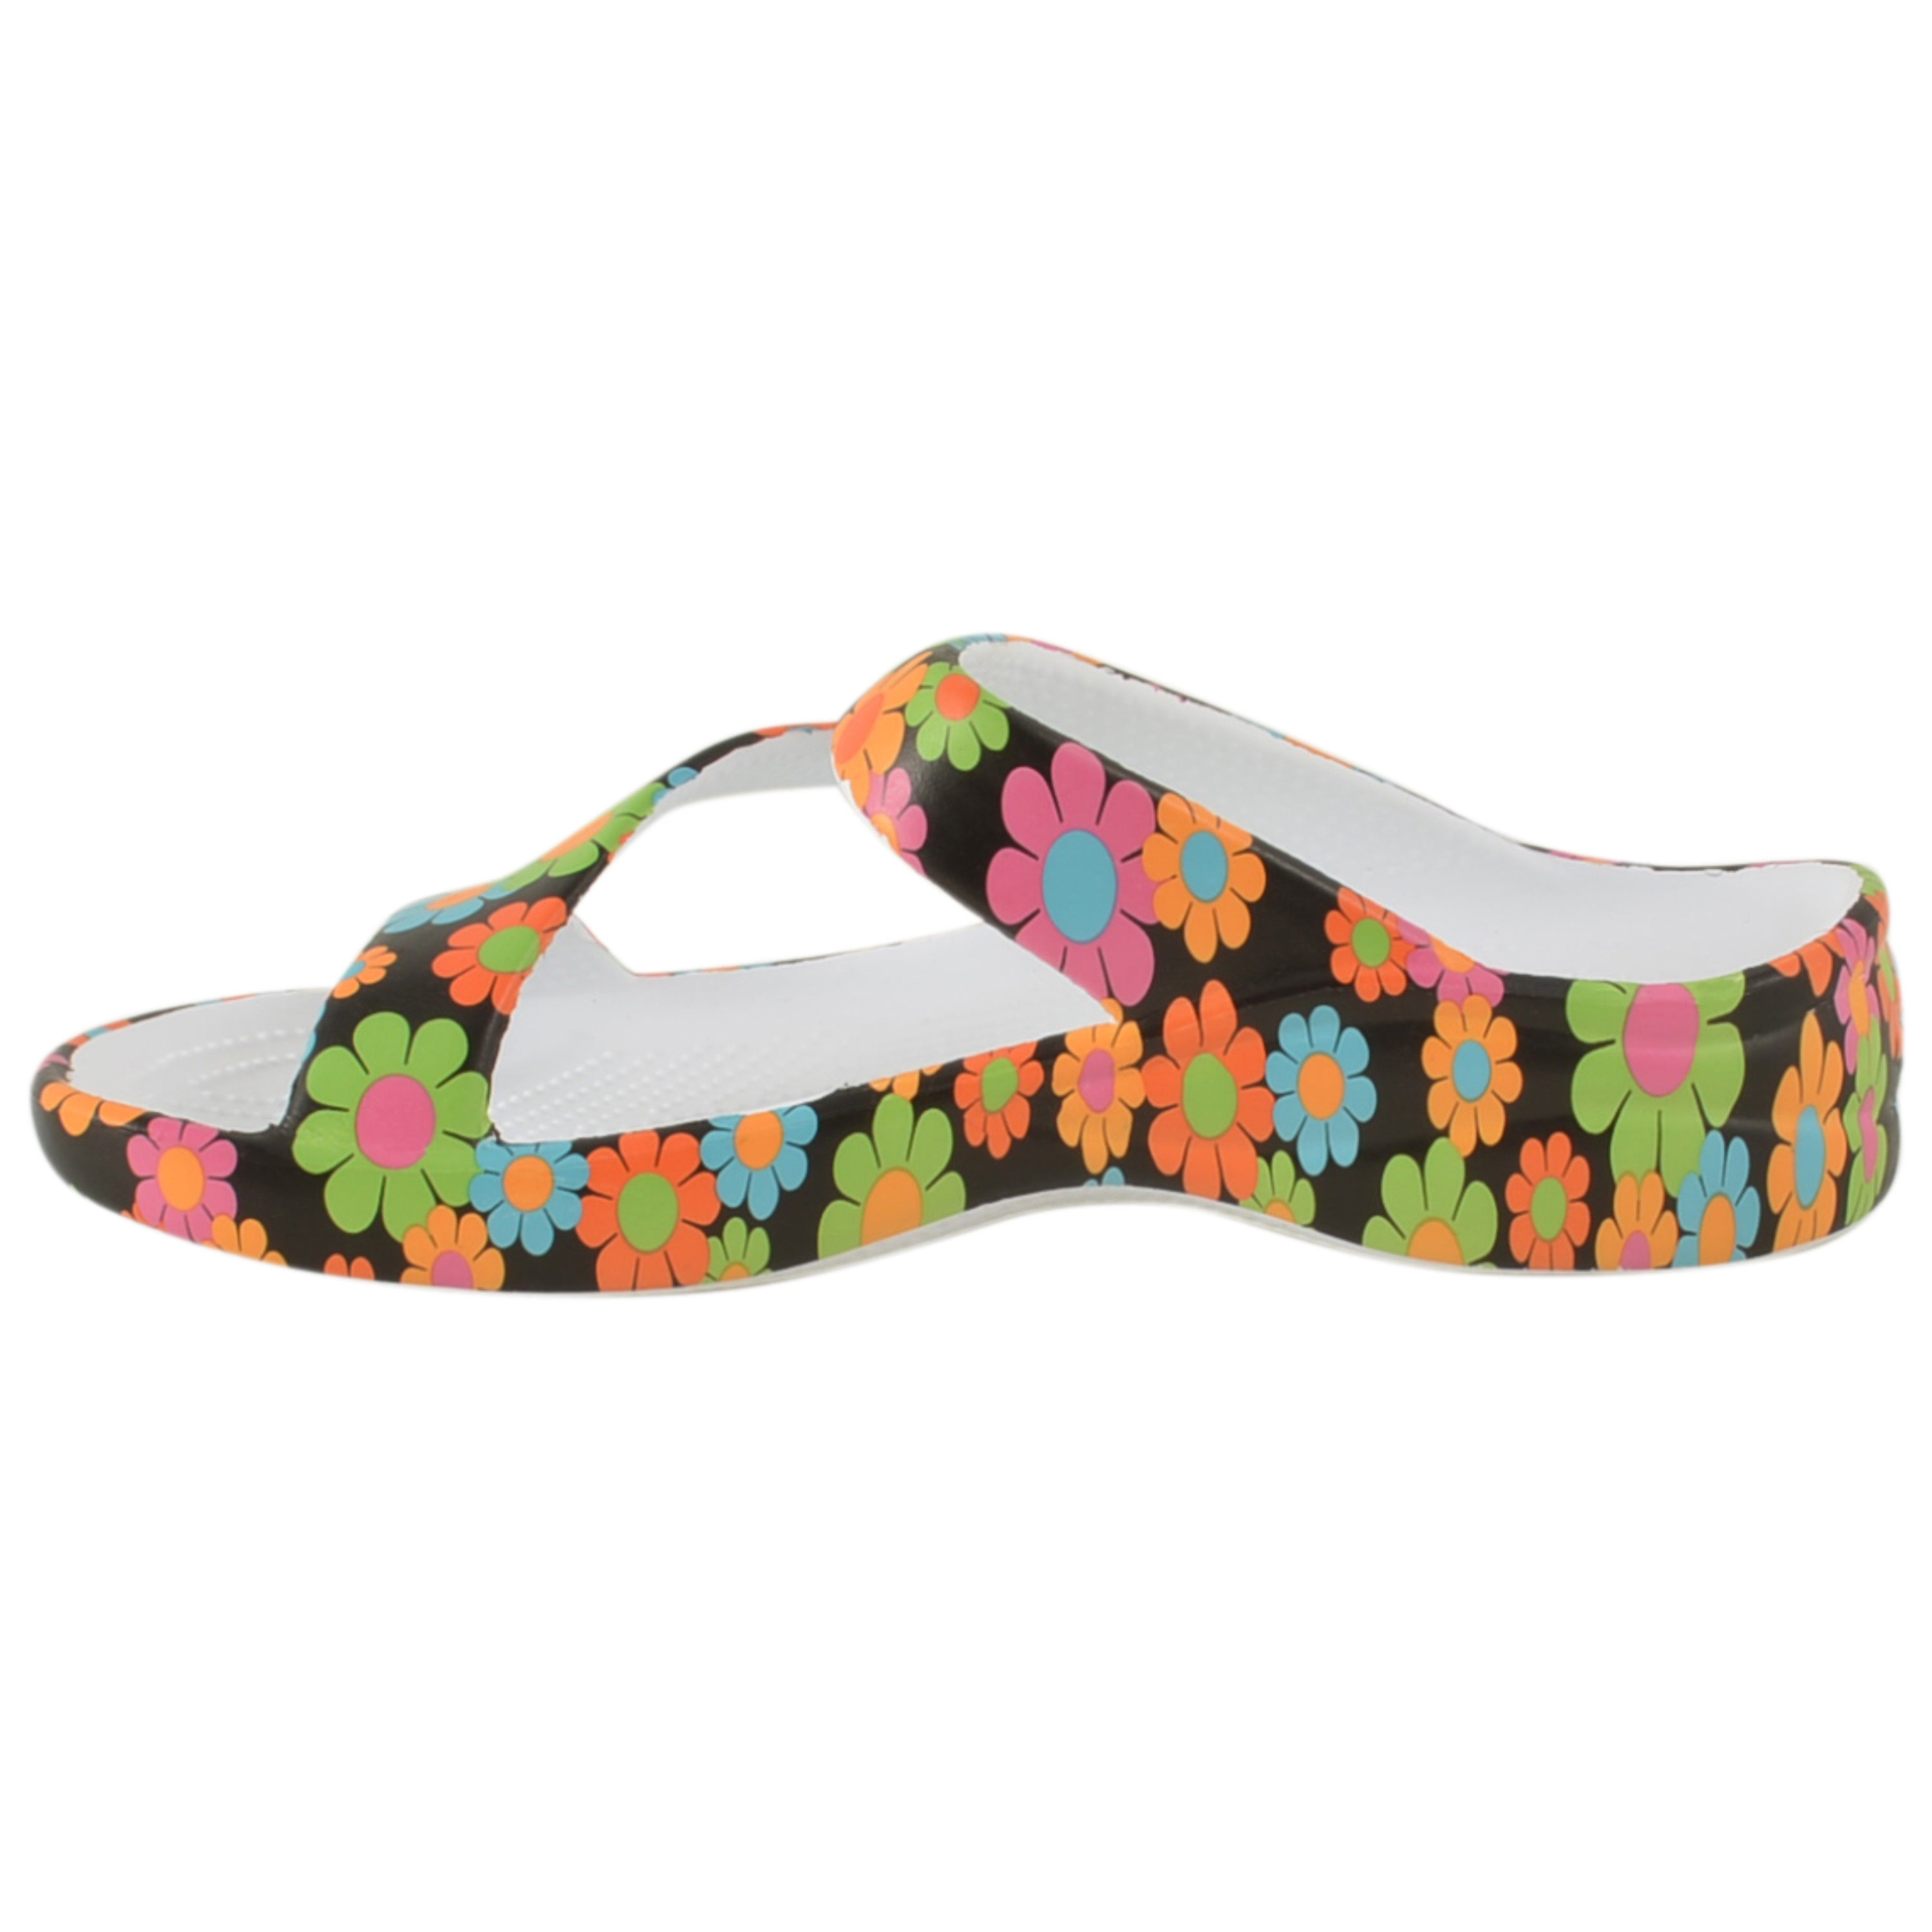 b5d740fa3496 Shop Women s Dawgs Loudmouth Z Sandal Magic Bus - Free Shipping On Orders  Over  45 - Overstock - 9112623